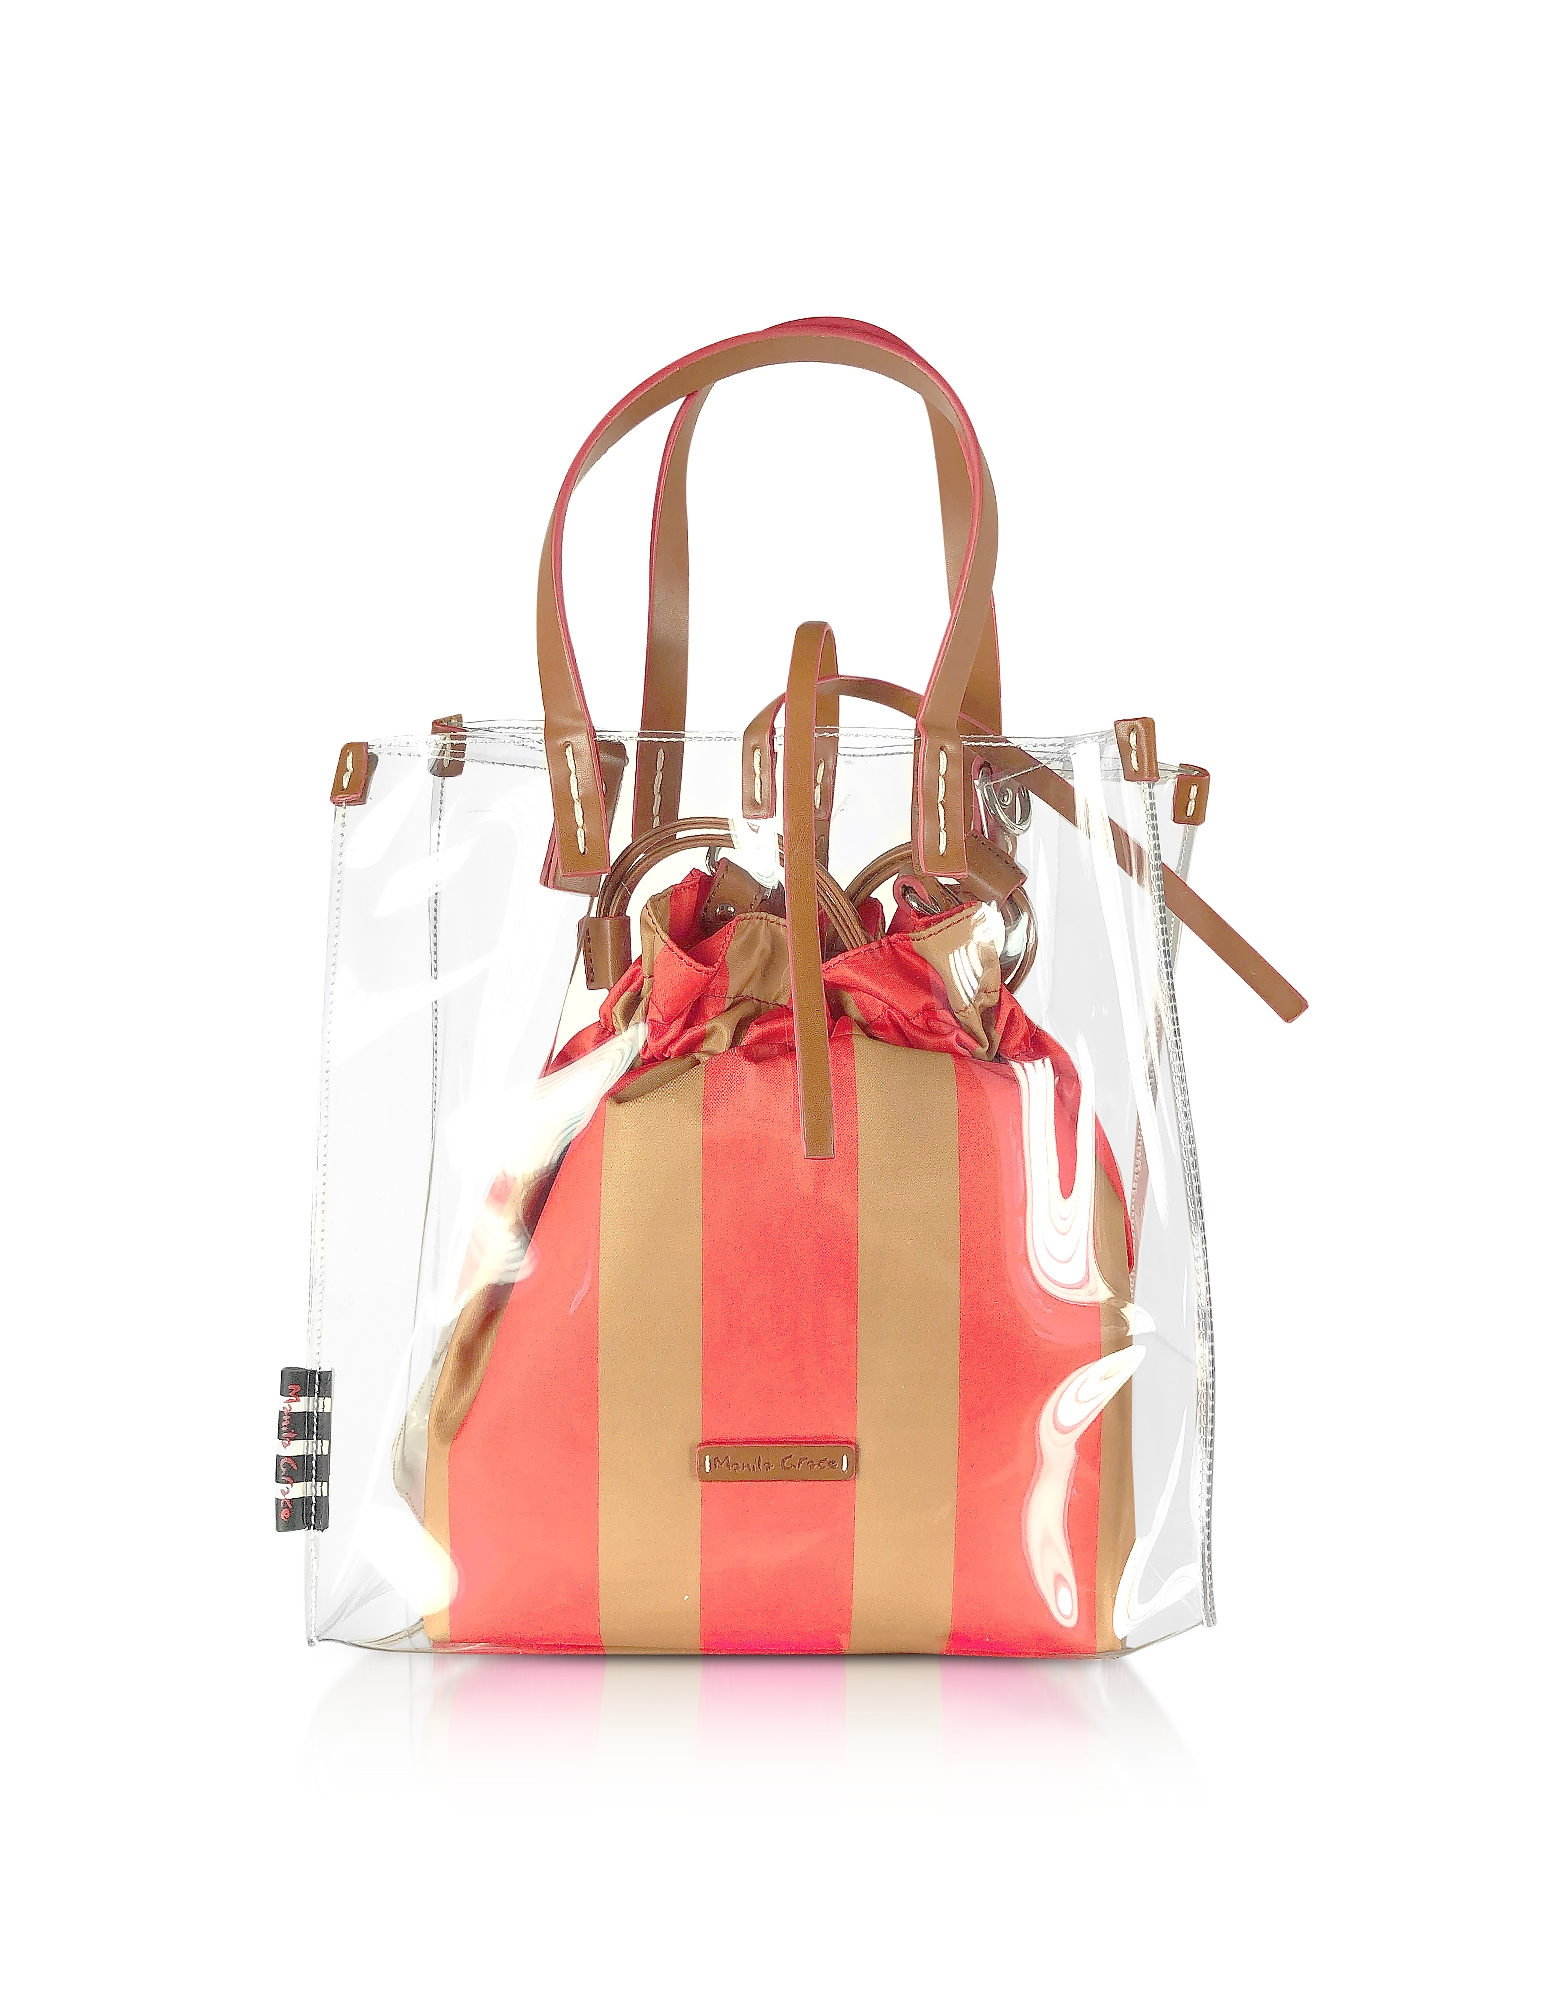 Manila Grace Designer Handbags, Transparent Tote Bag w/Striped Pouch